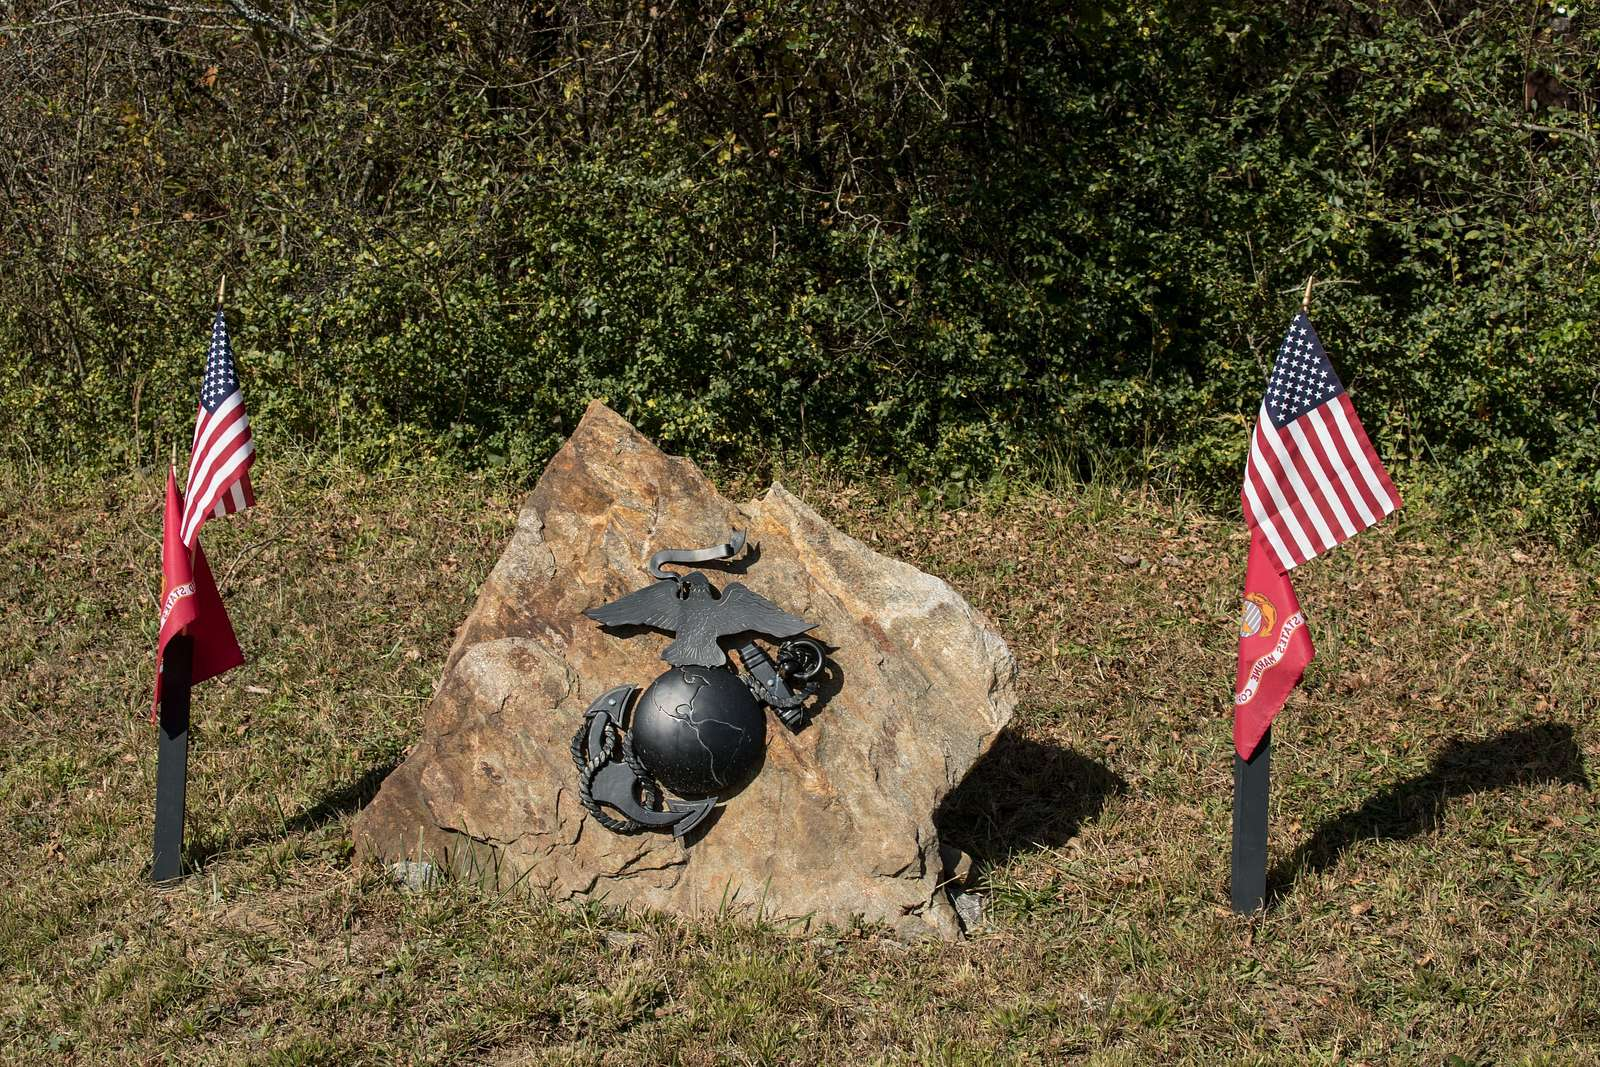 A roadside tribute, with no explanation given, to the United States Marine Corps, near Etowah, North Carolina